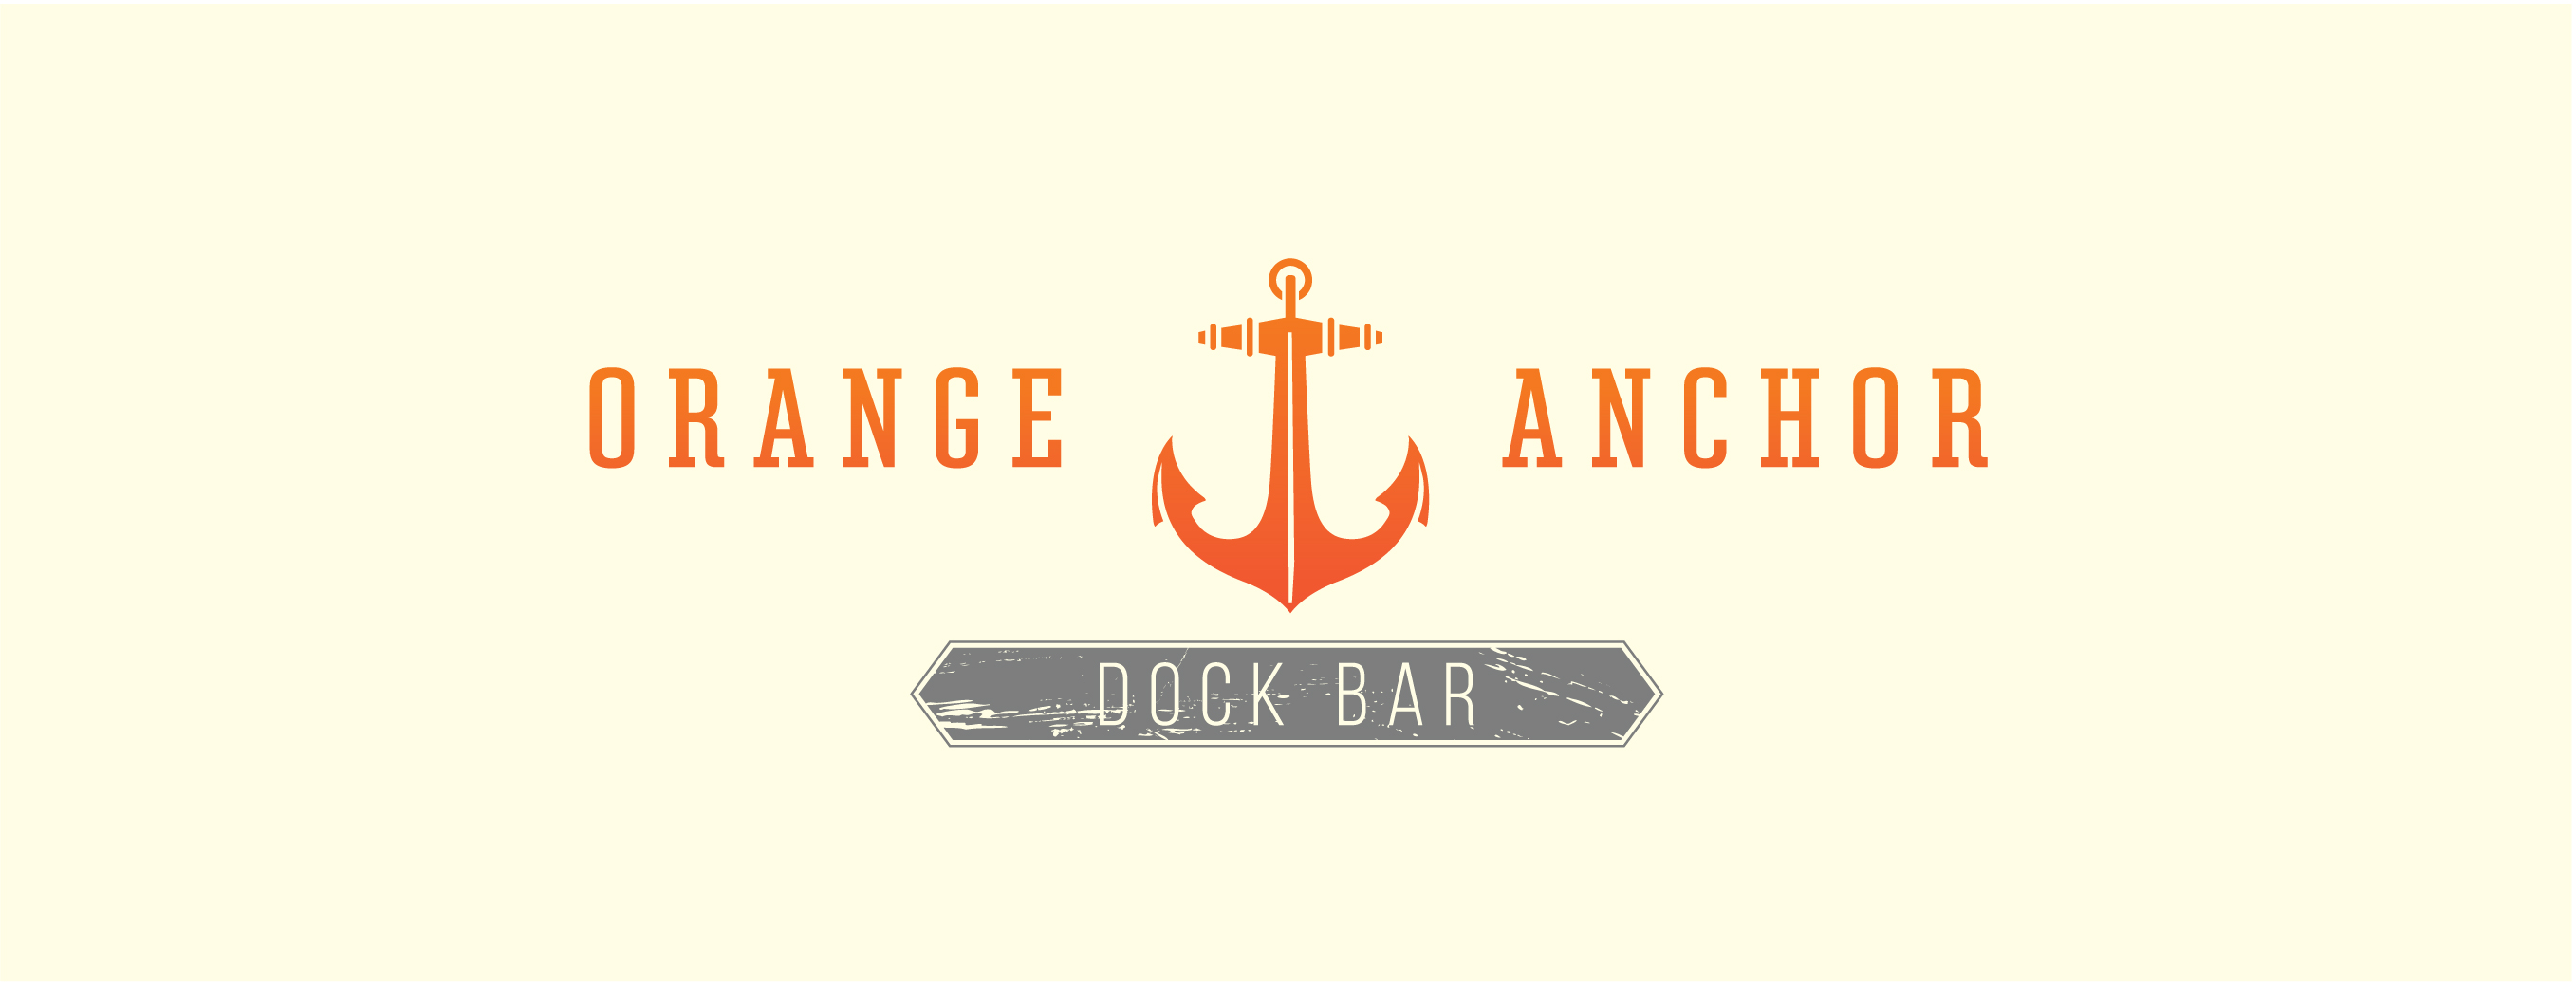 Orange Anchor logo